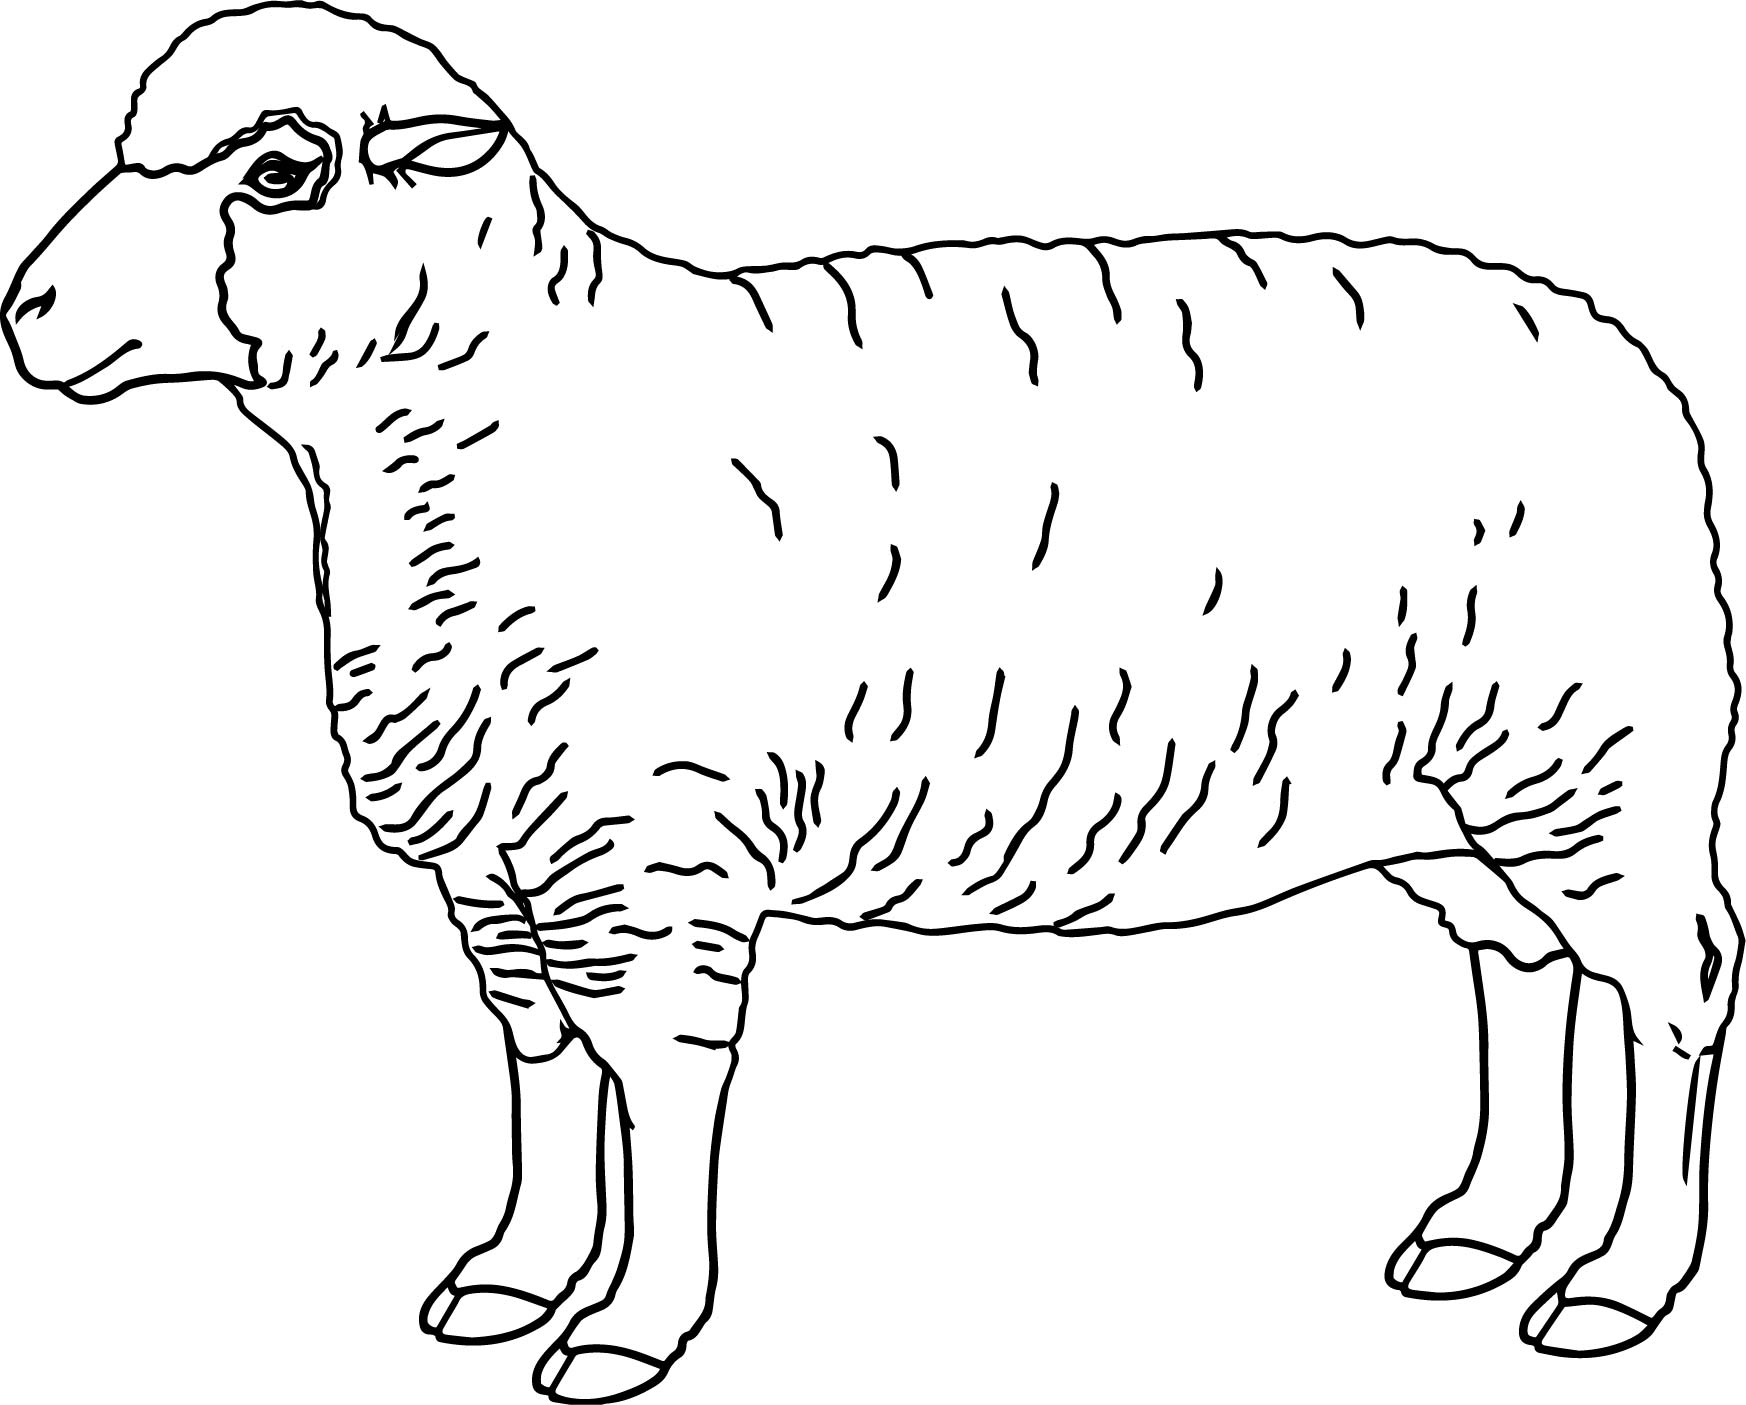 Realistic Sheep Coloring Page | Wecoloringpage.com